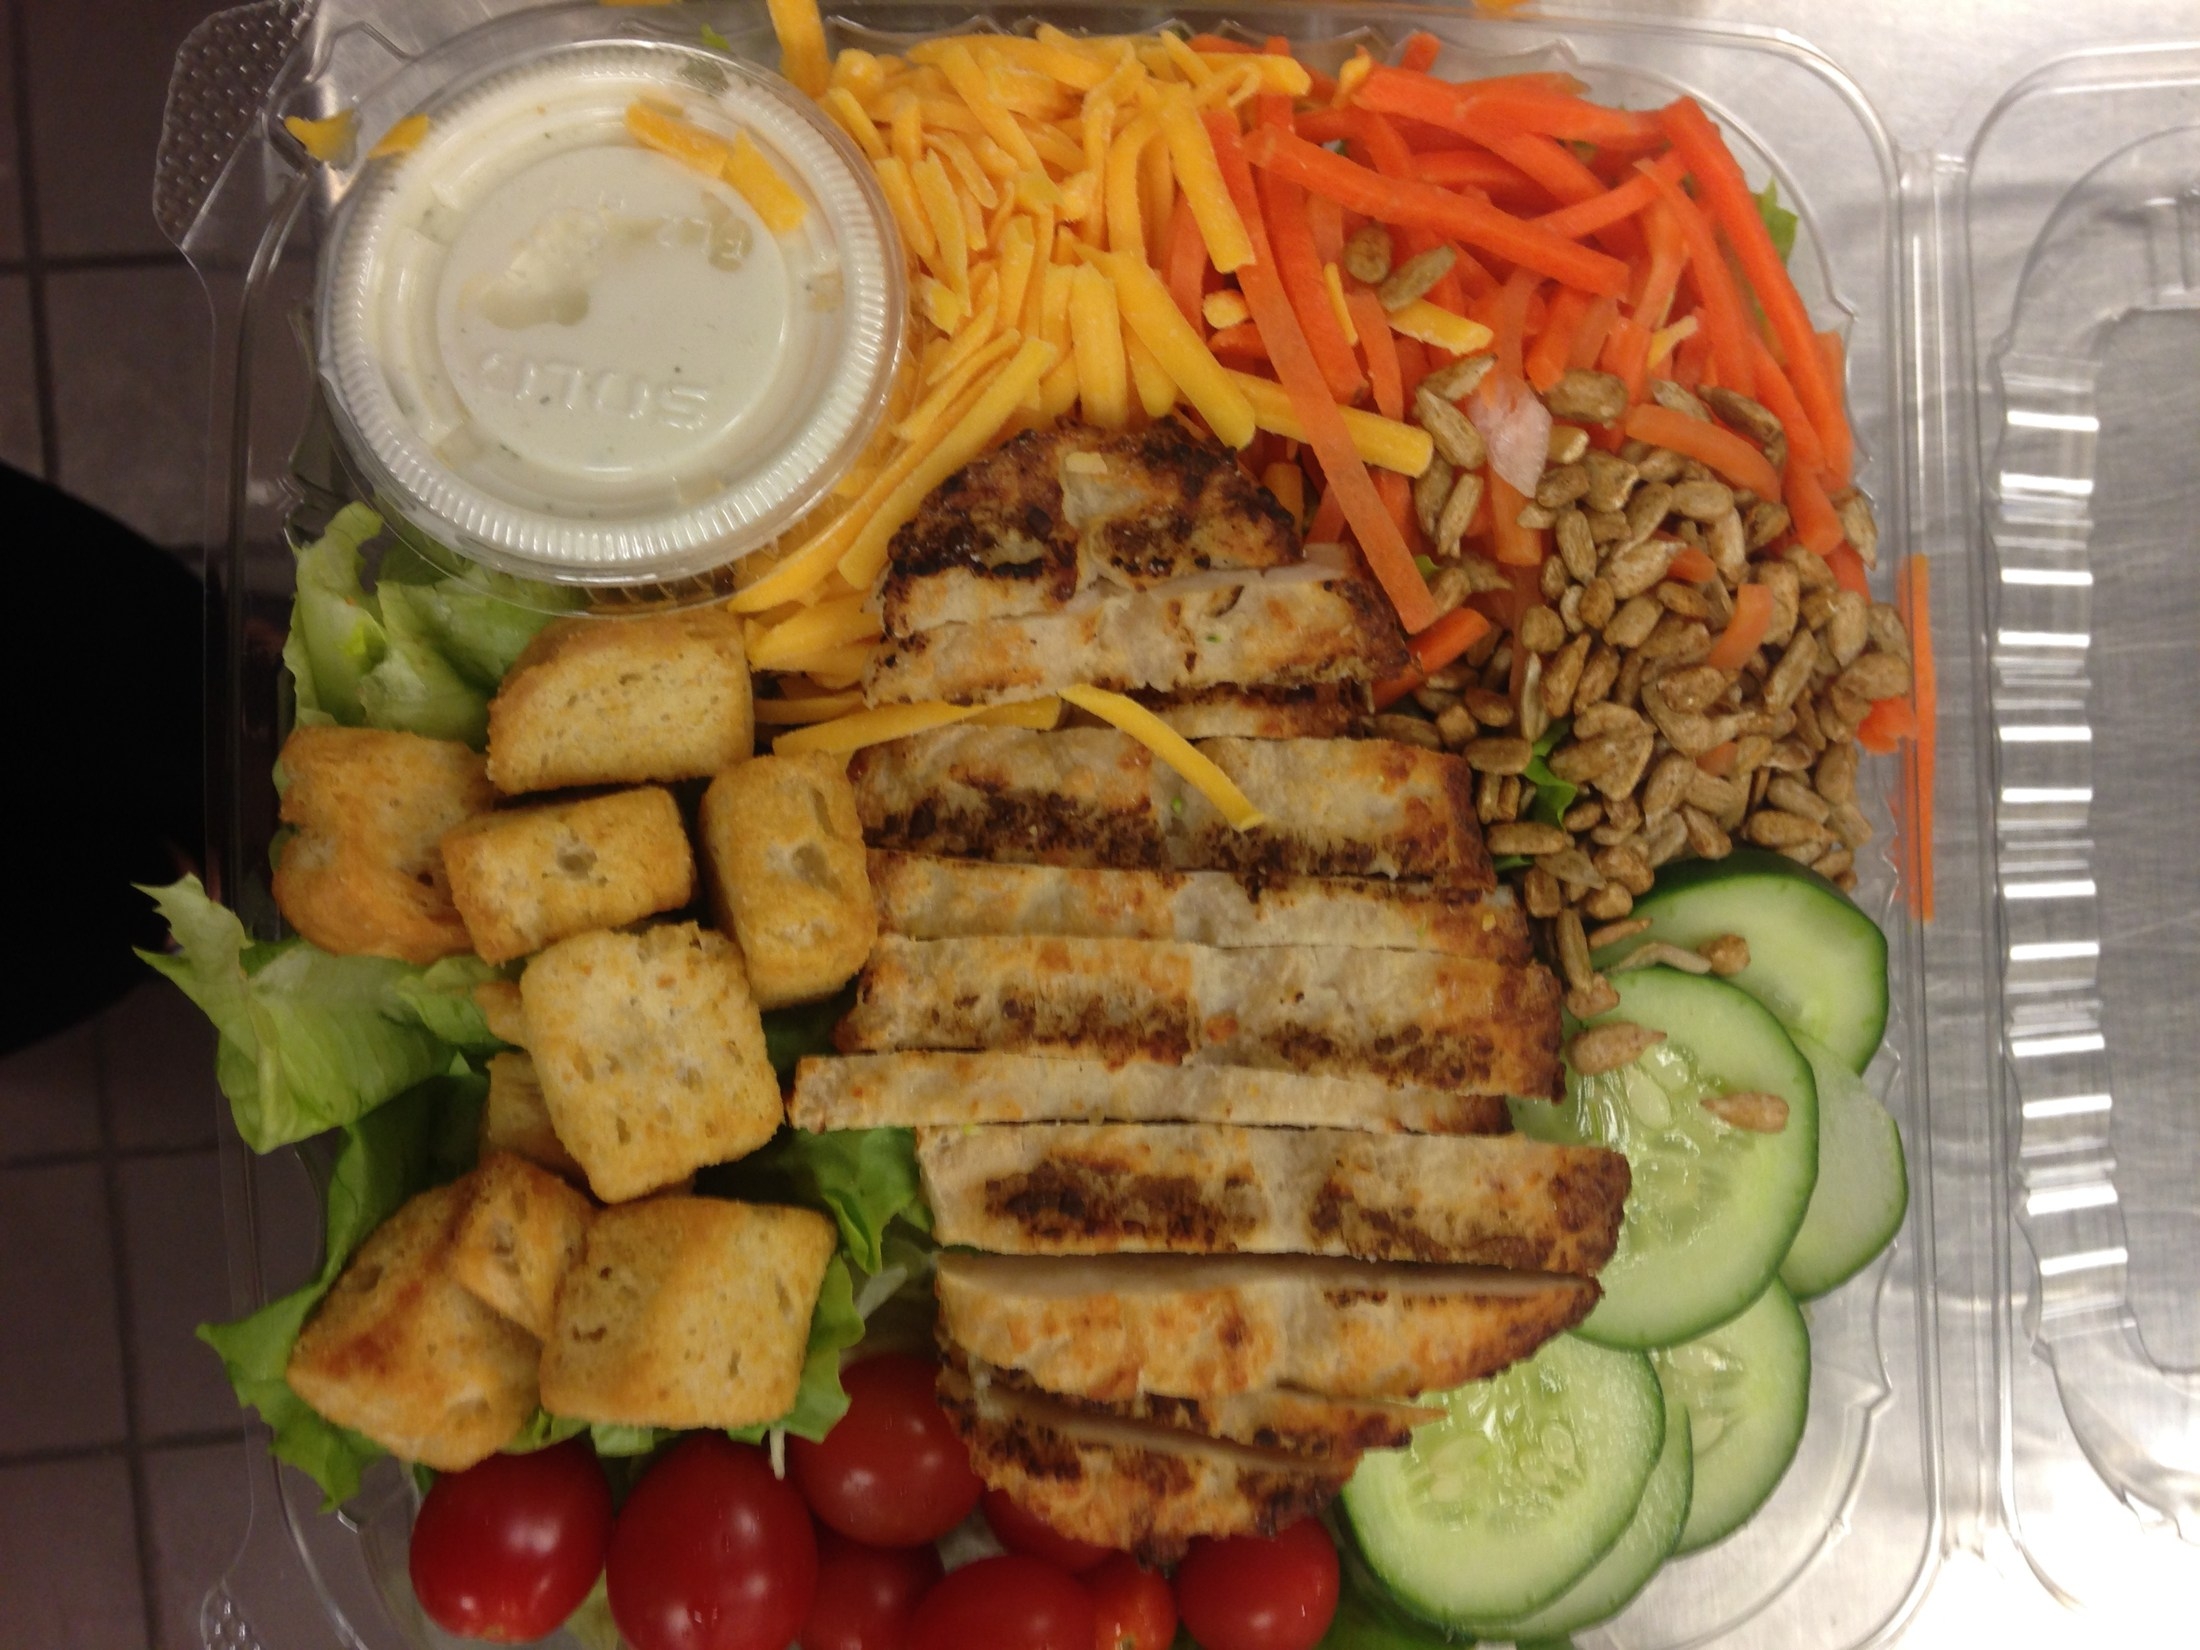 Signature salad tray with chicken.